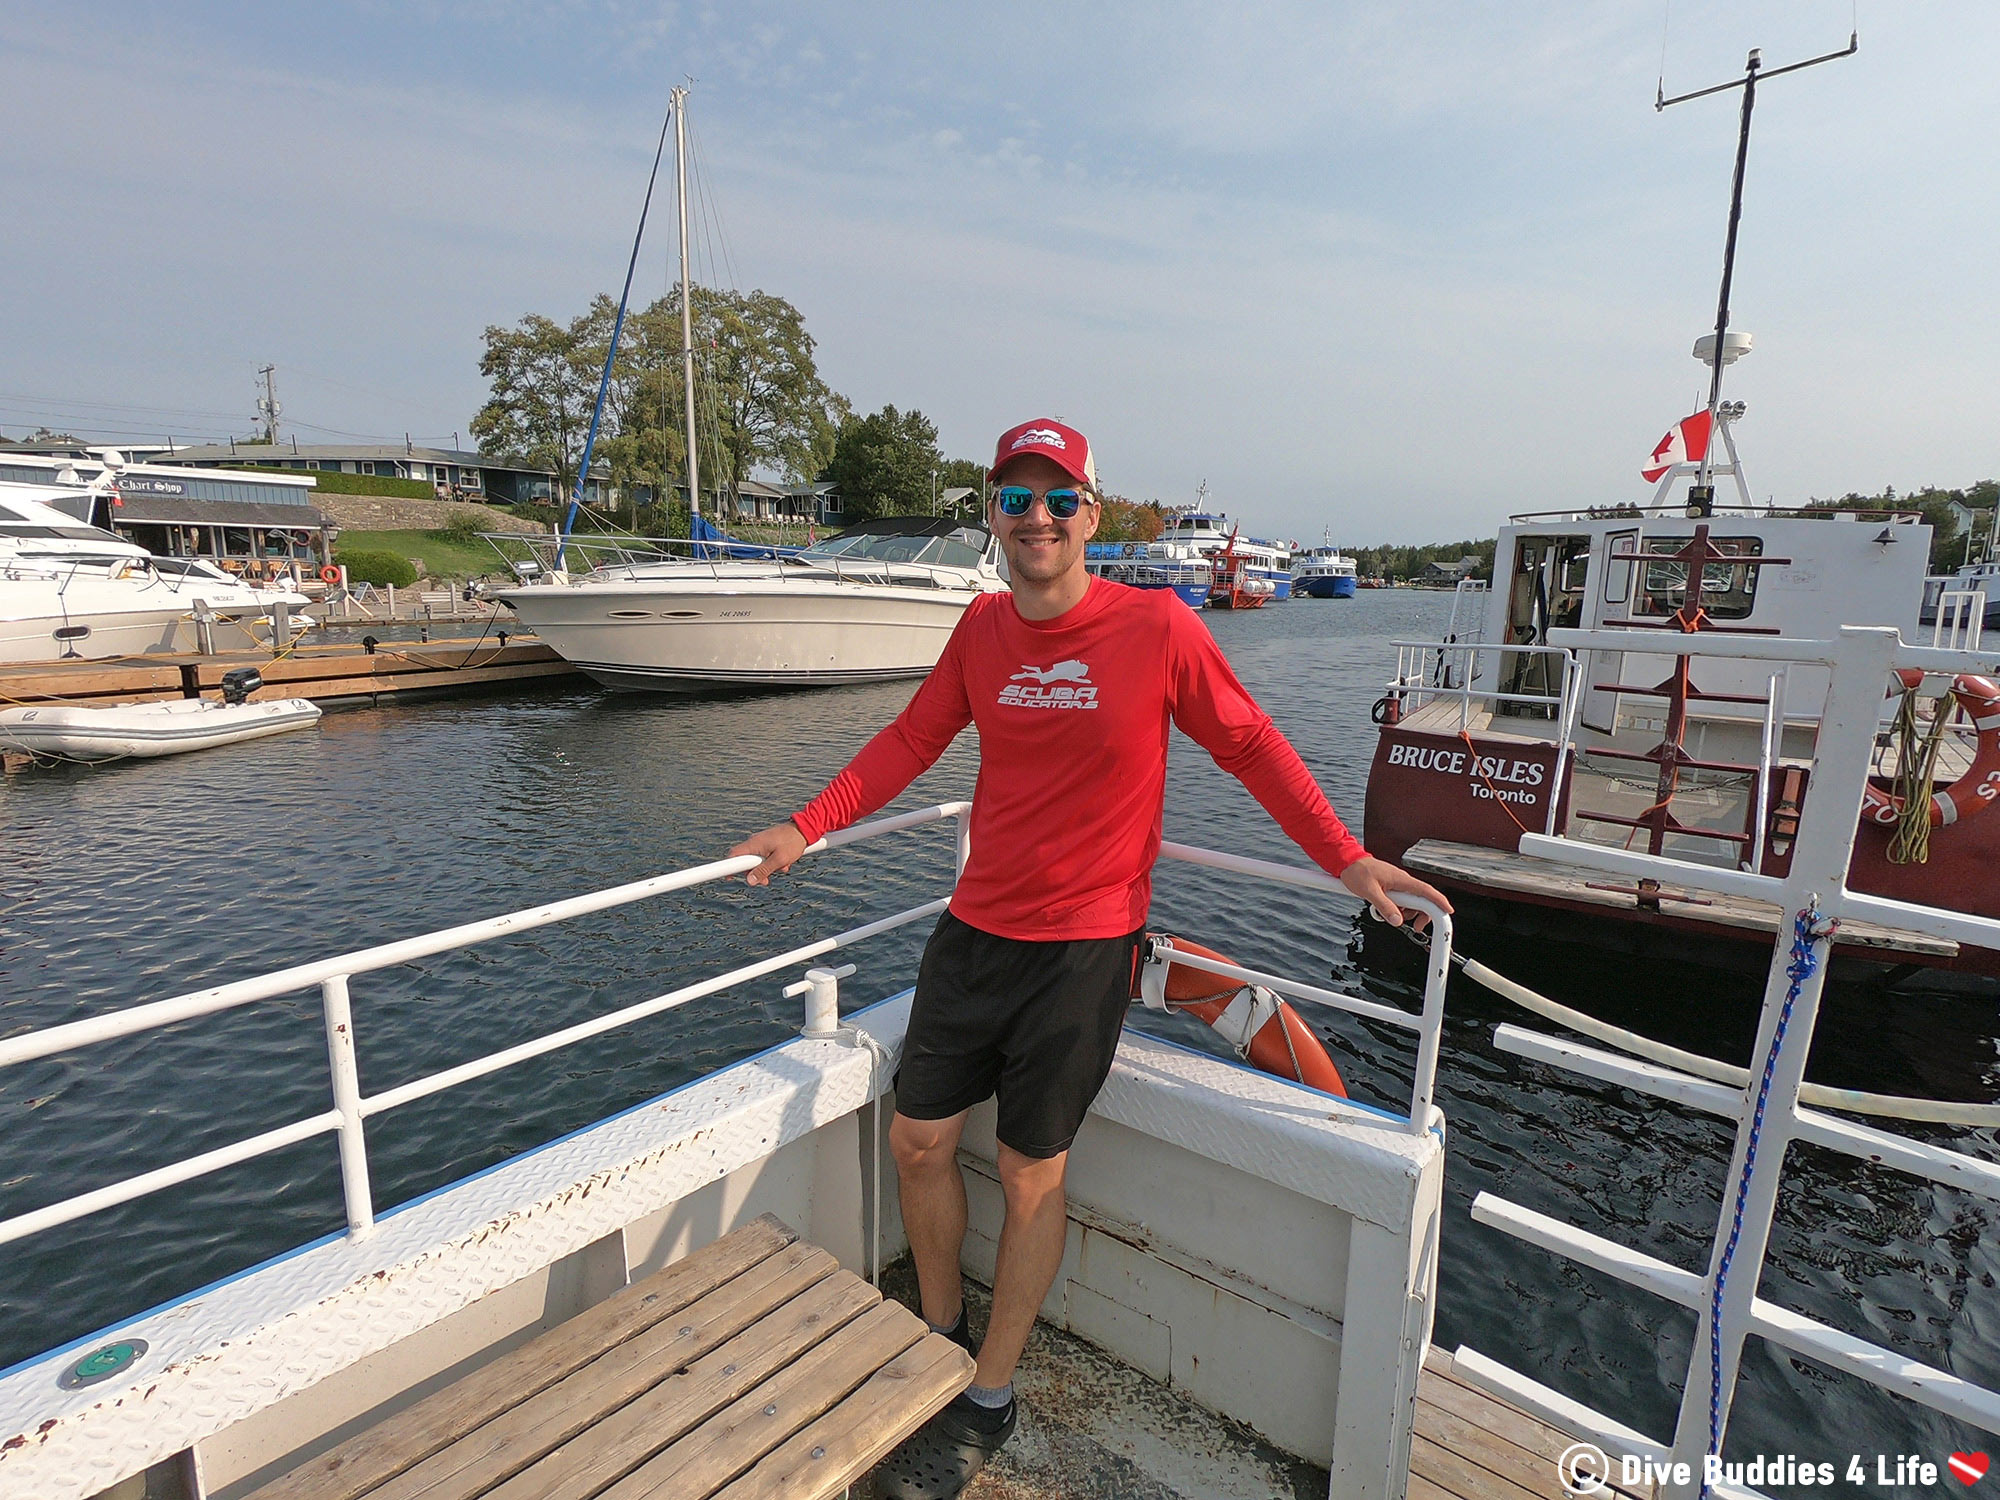 Joey On A Dive Boat At Home In Ontario With His Scuba Educators International Gear